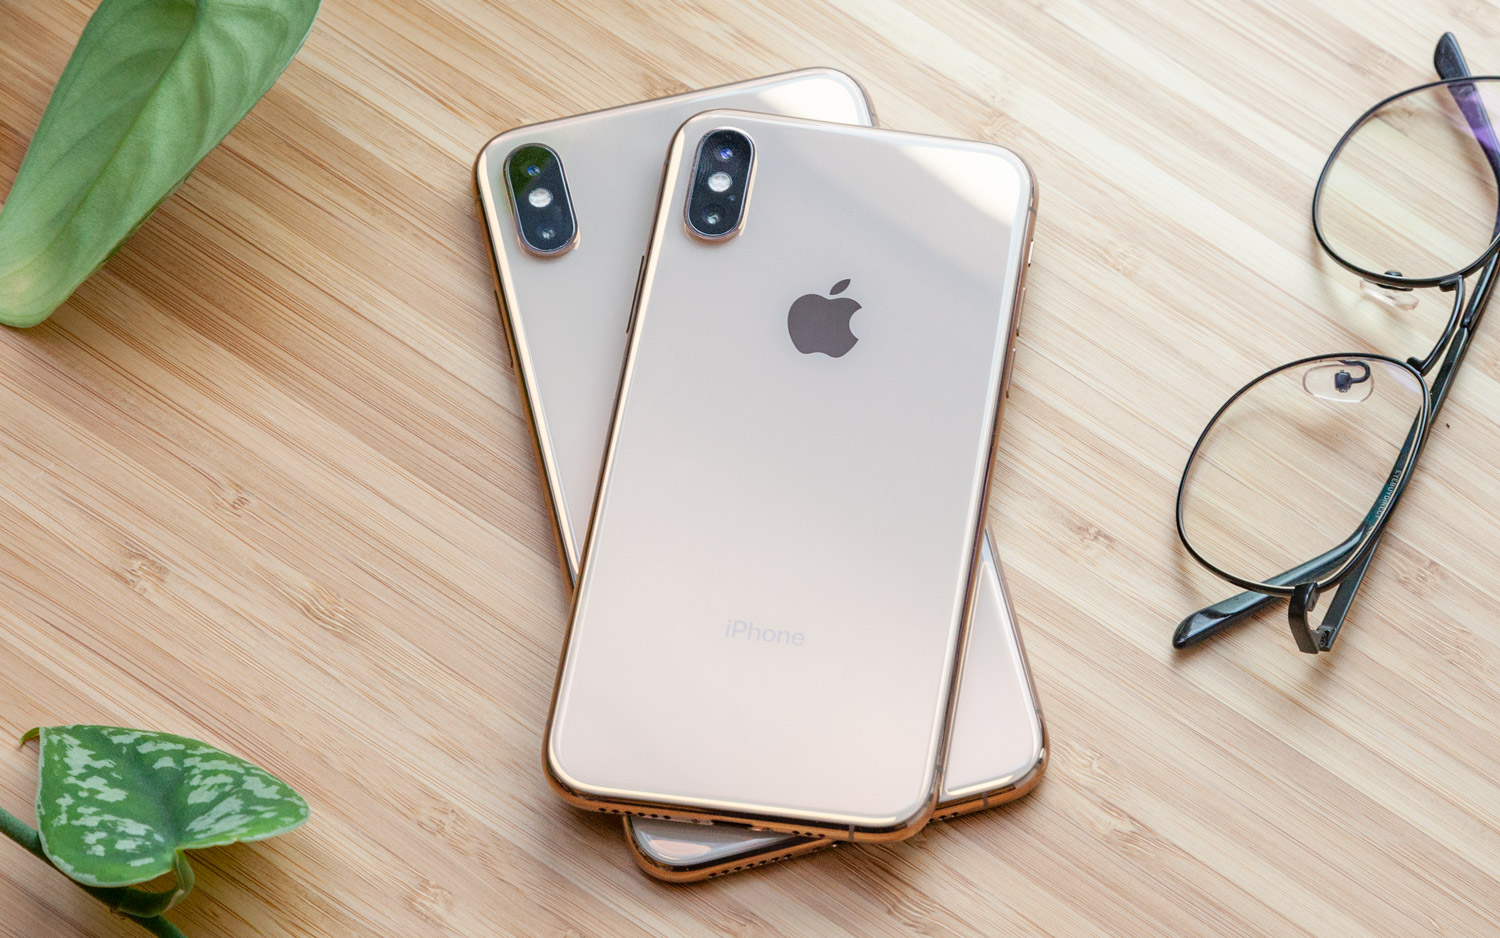 iPhone XS and iPhone XS Max: What is the difference?